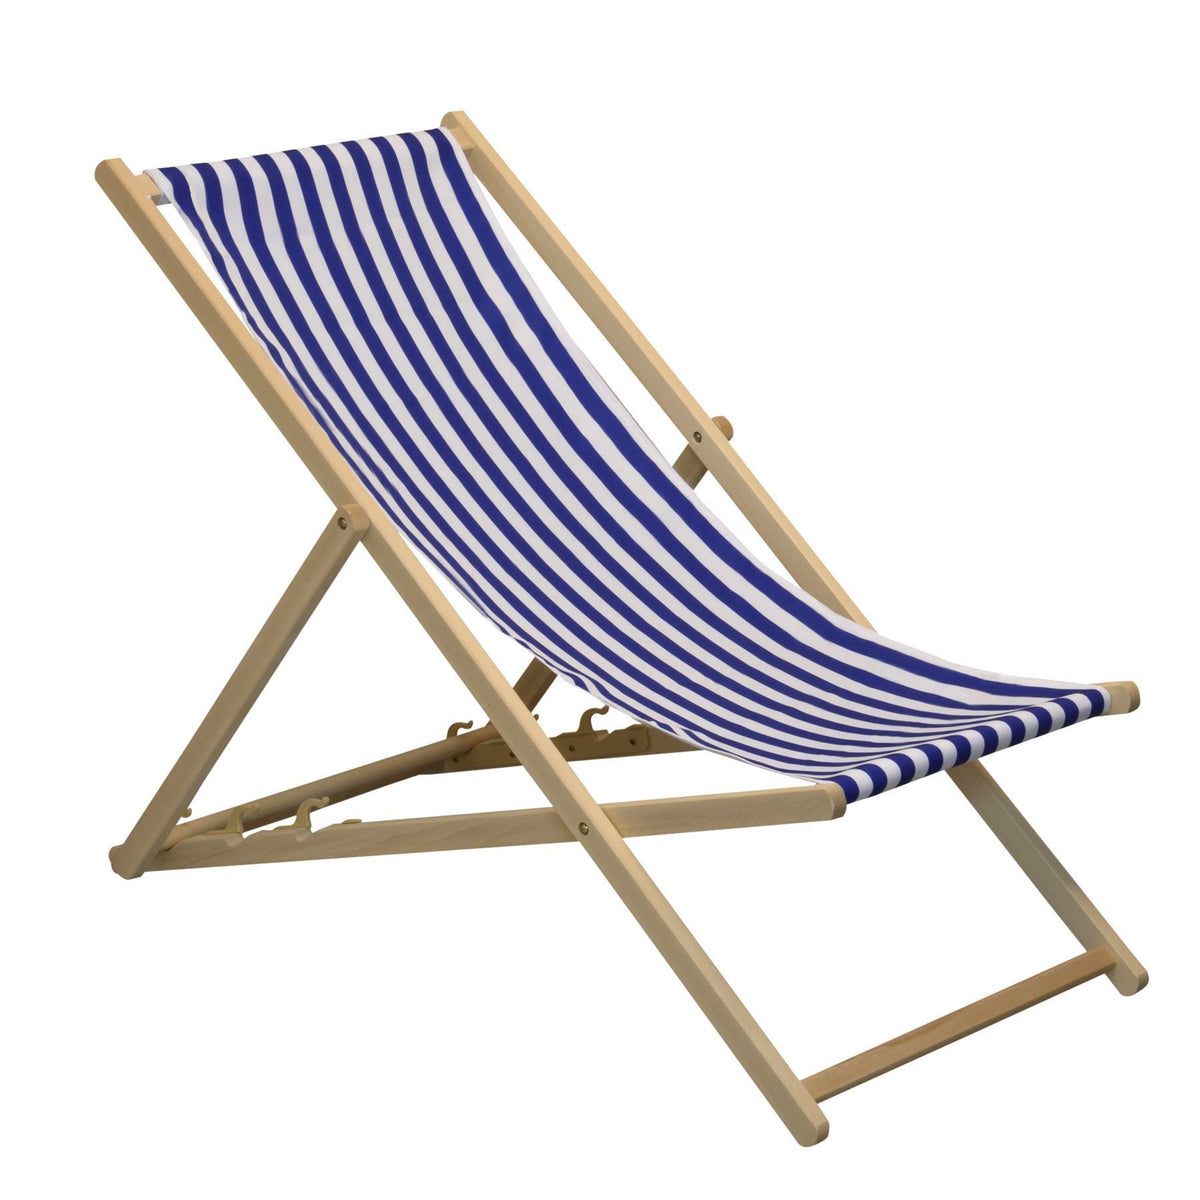 Harbour Housewares Garden Deck Chair Beach Style - Blue/White